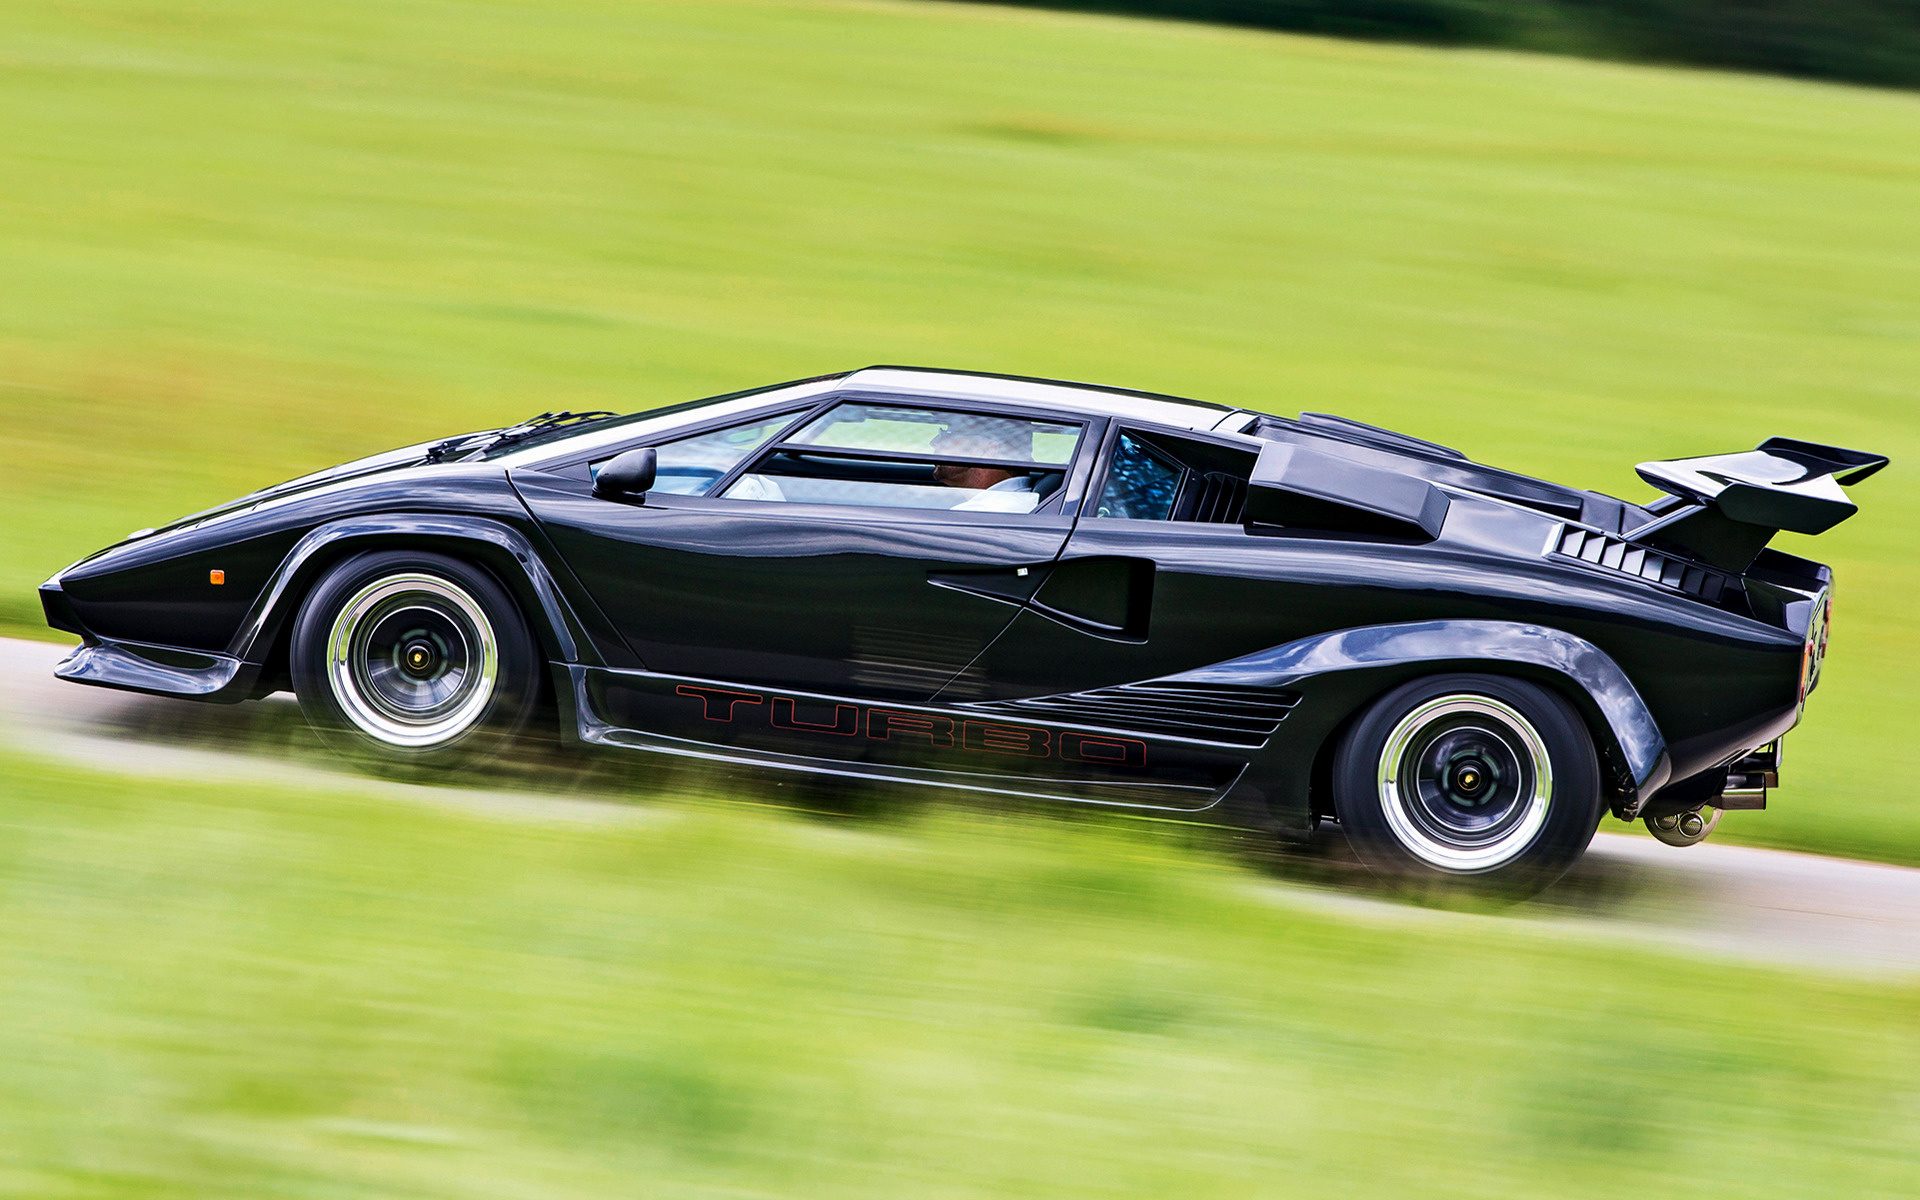 Lamborghini Countach Turbo S Prototype Car Wallpaper